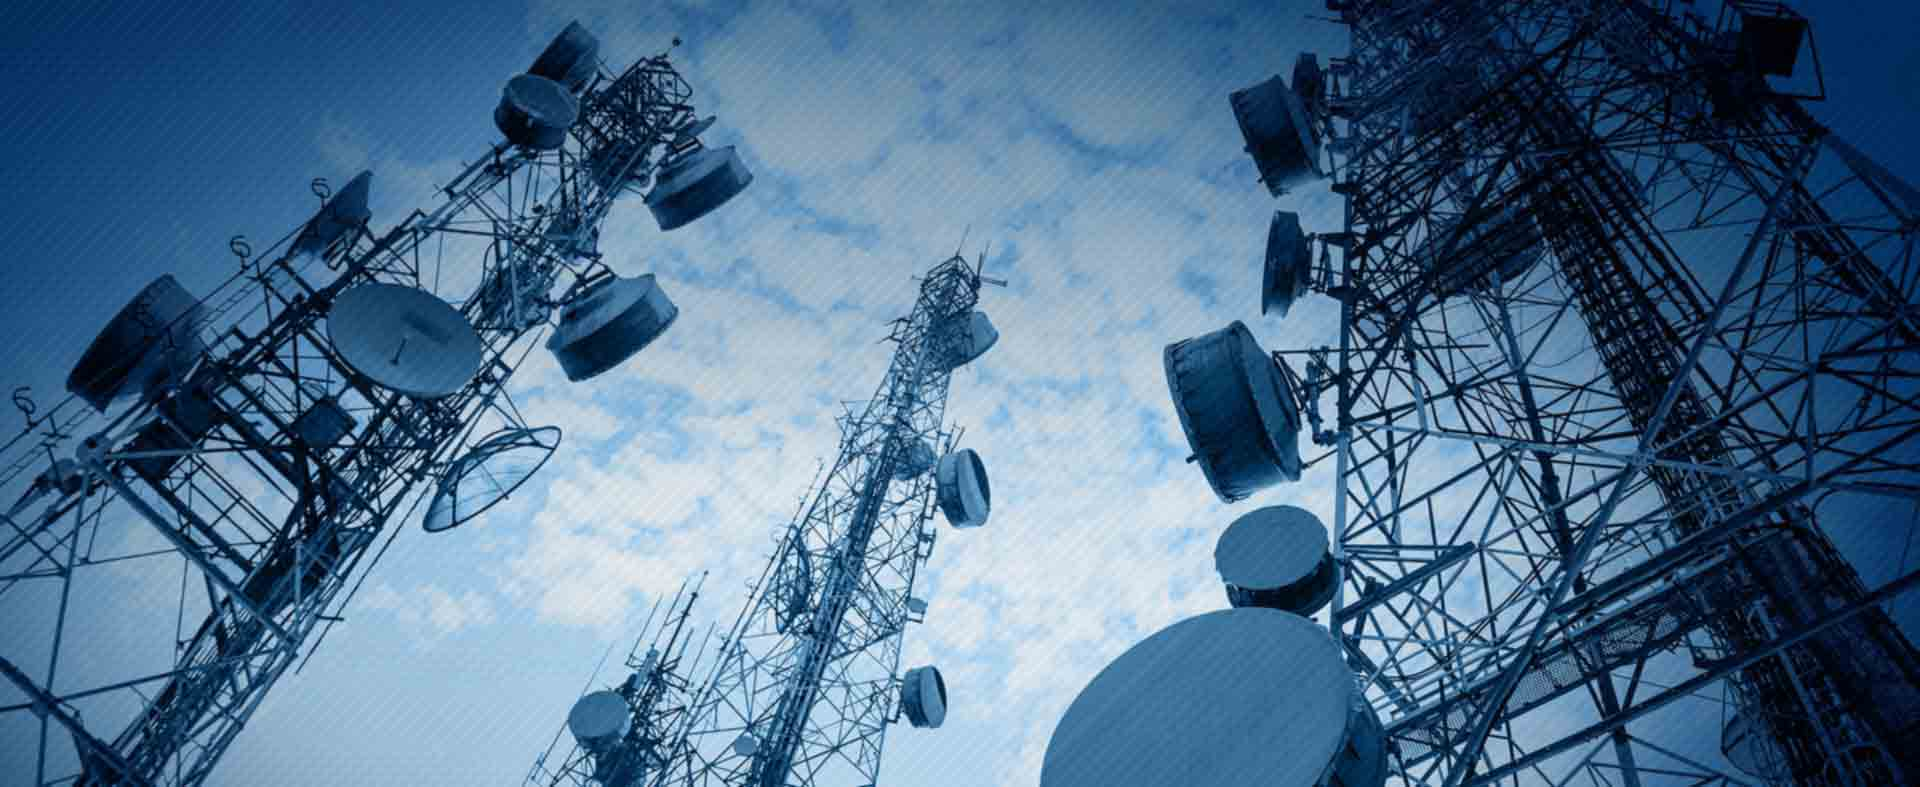 Construction installation and maintenance of telecommunications systems